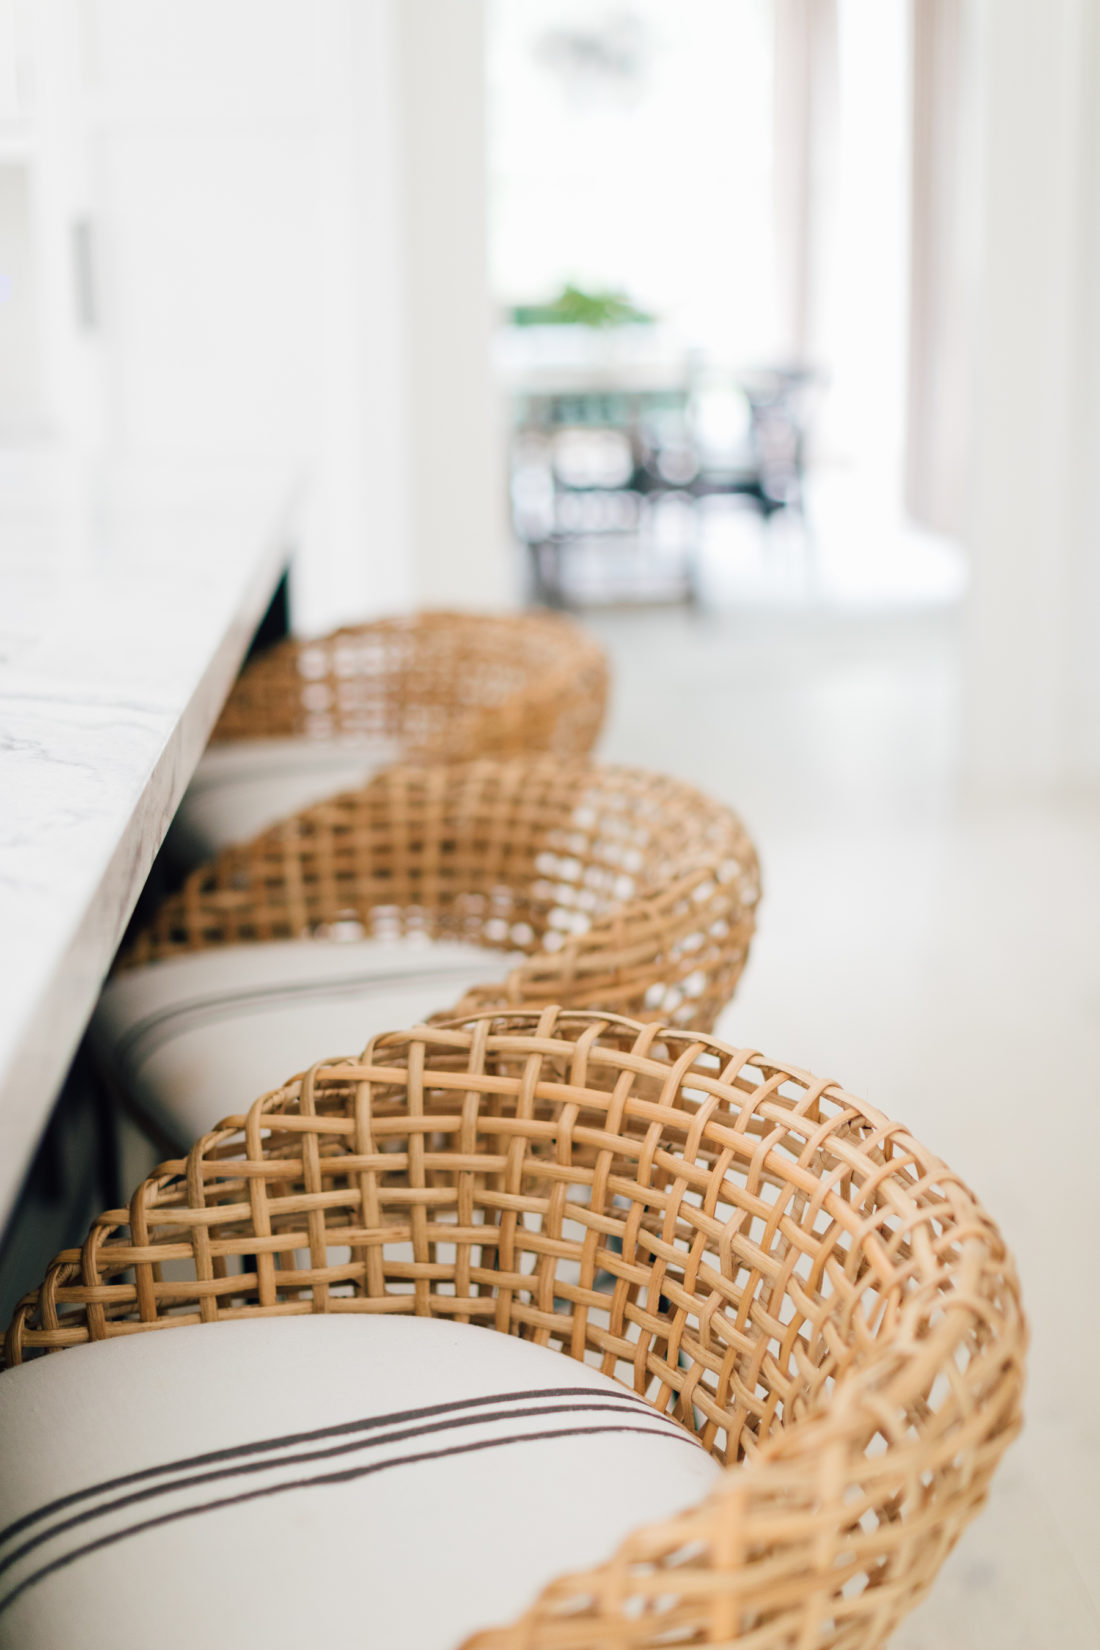 A closeup shot of the woven bar stools and the kerri rosenthal fabric on the bar stools in Eva Amurri Martino's Connecticut kitchen